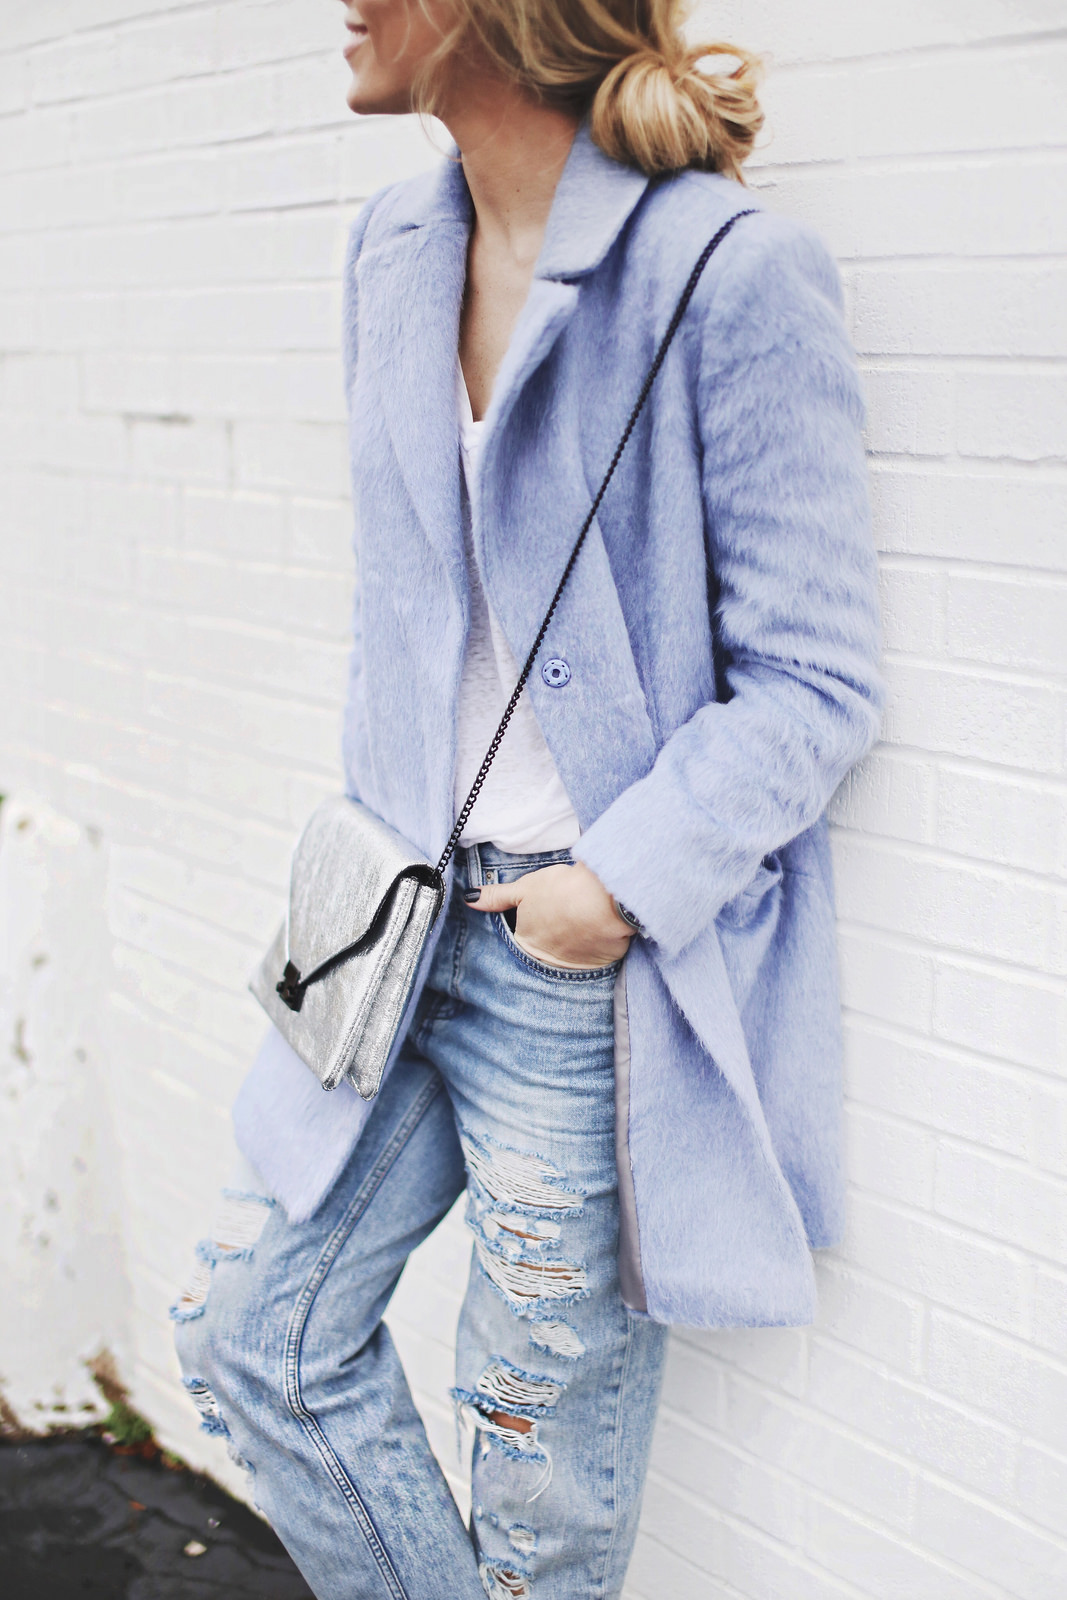 How To Wear Winter Pastels Outfit Ideas Just The Design